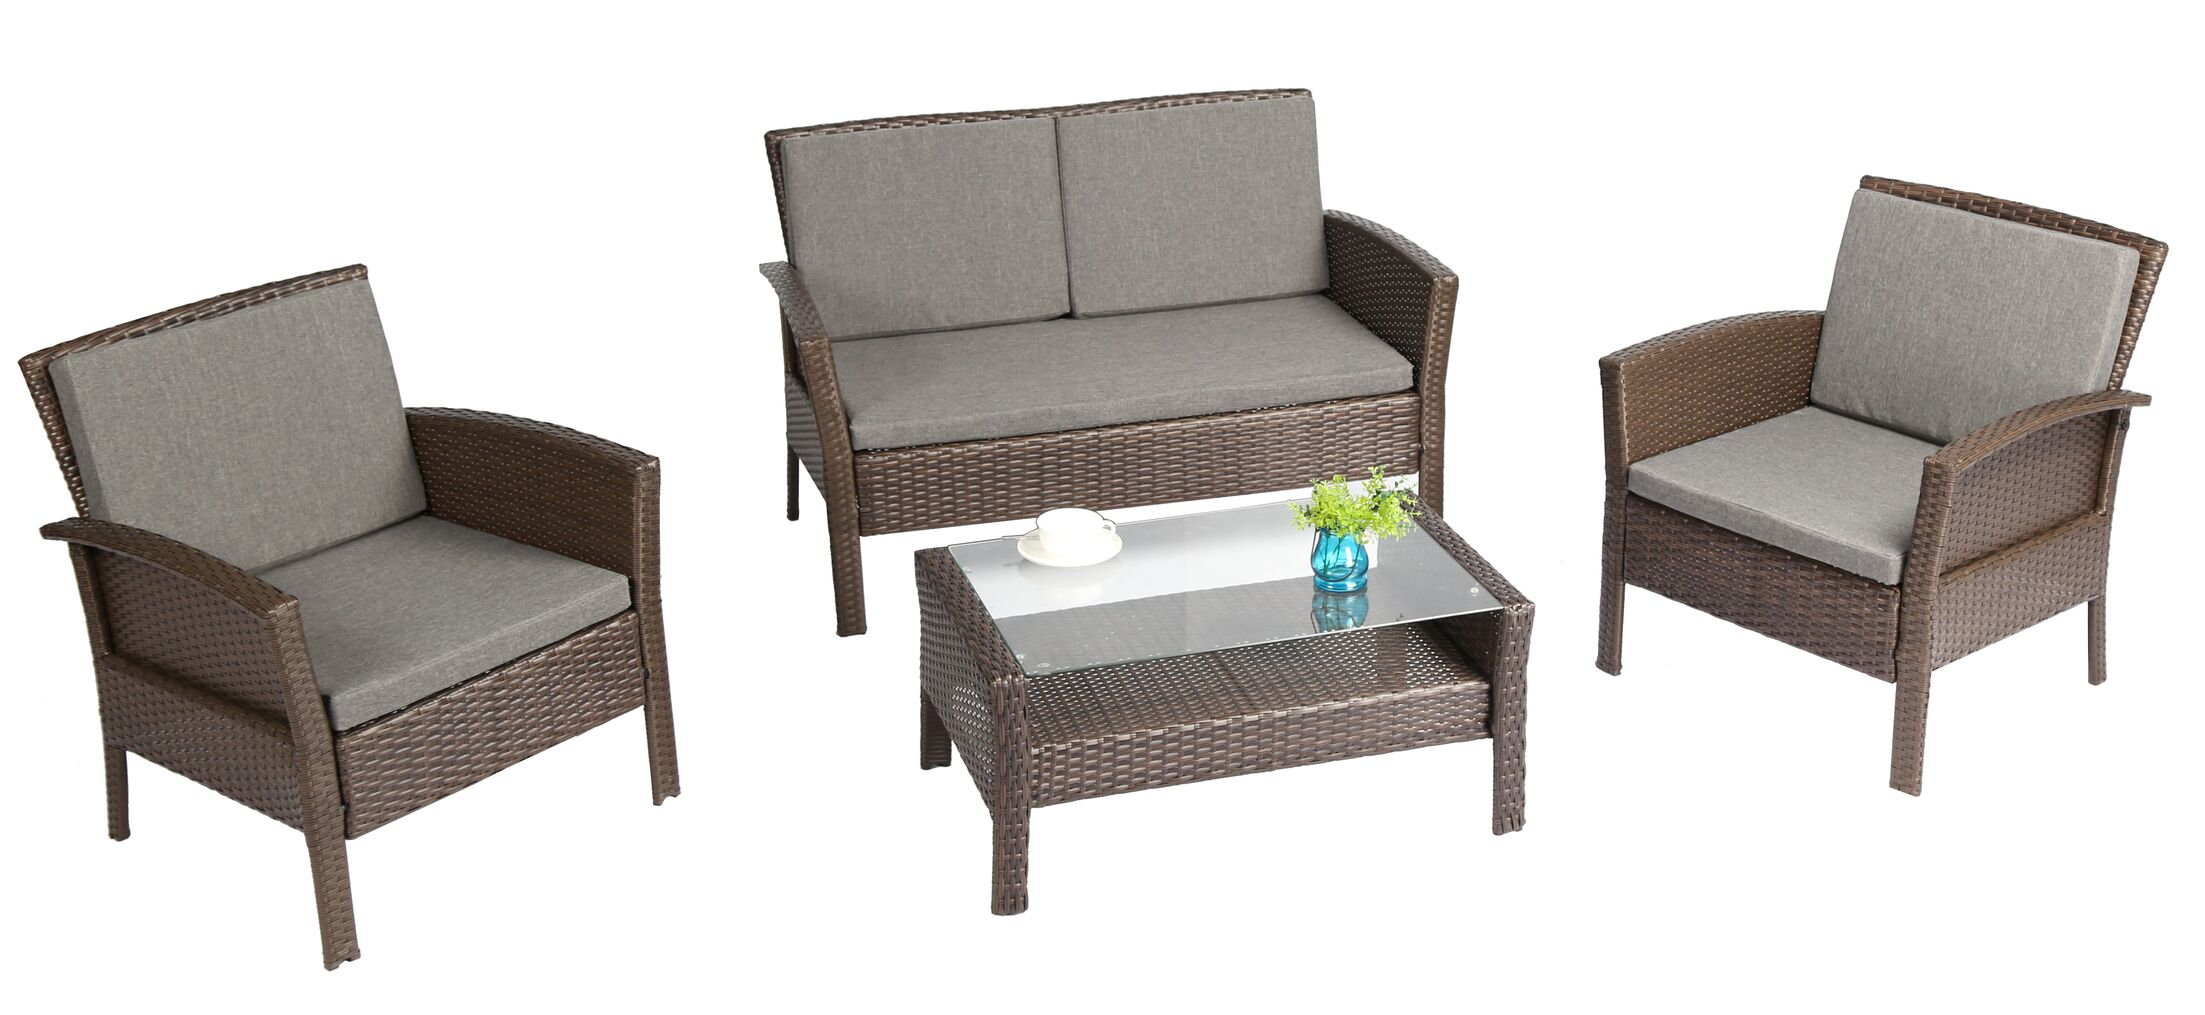 Spiaggia 4 Piece Sofa Set with Cushions Color: Brown